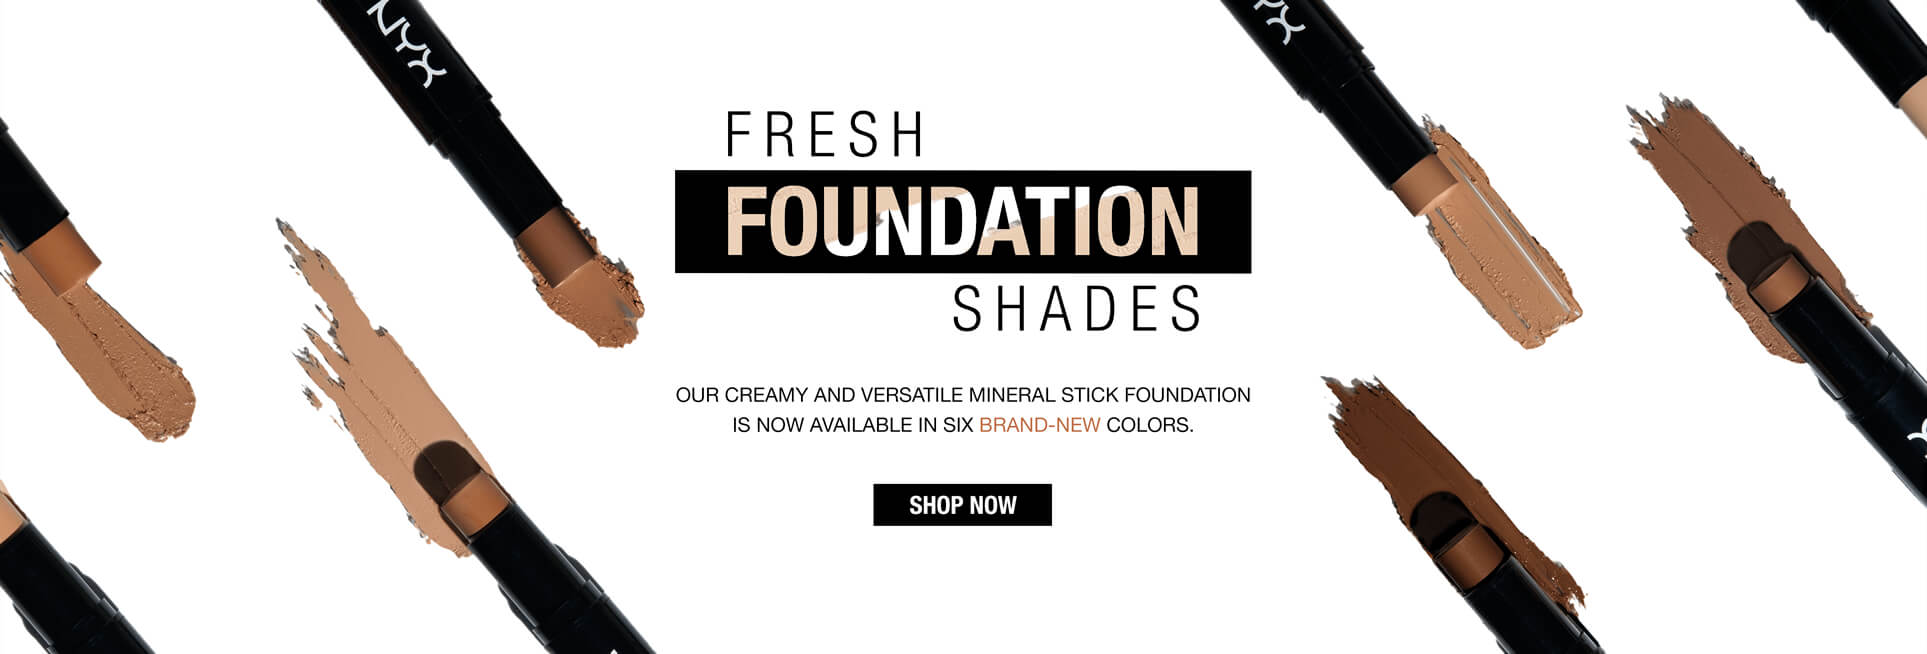 Fresh Foundation Shades. Our creamy and versatile Mineral Stick Foundation is now available in six brand-new colors.